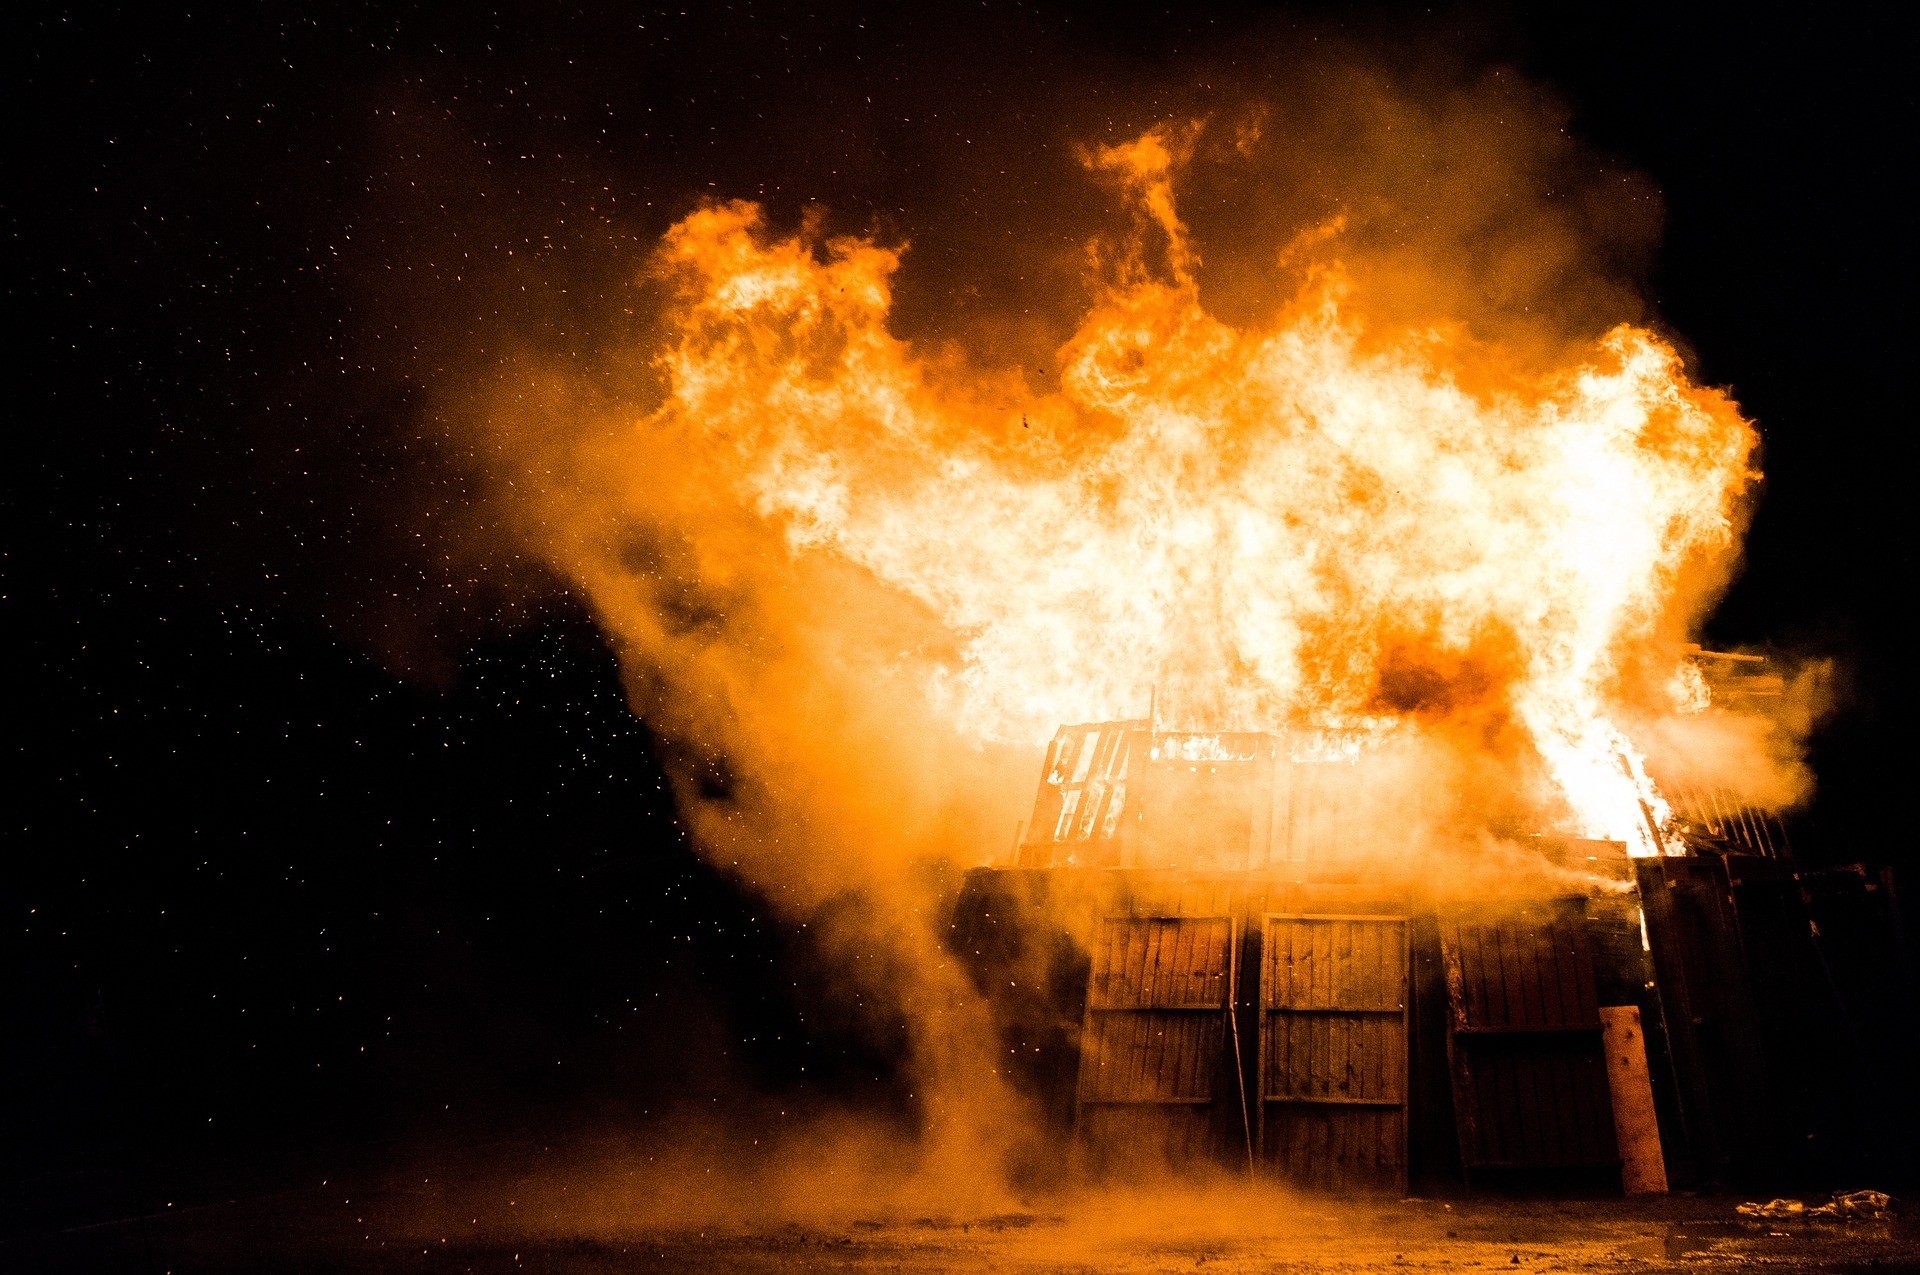 Can shipping containers burn?